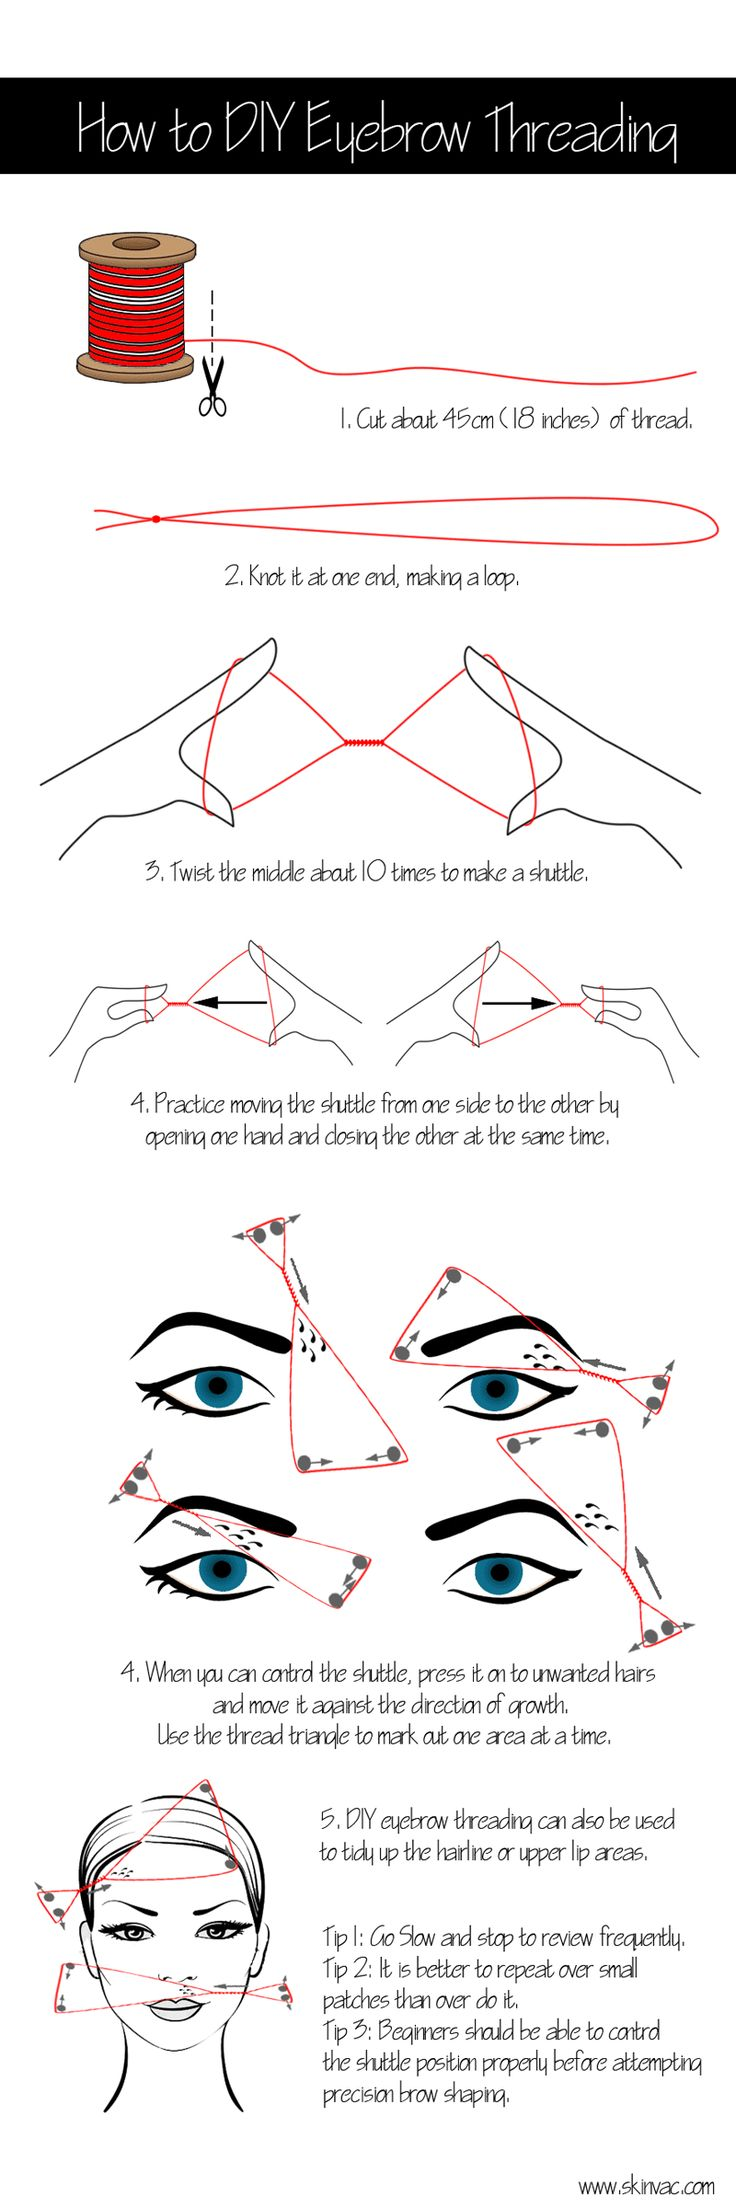 DIY threading.